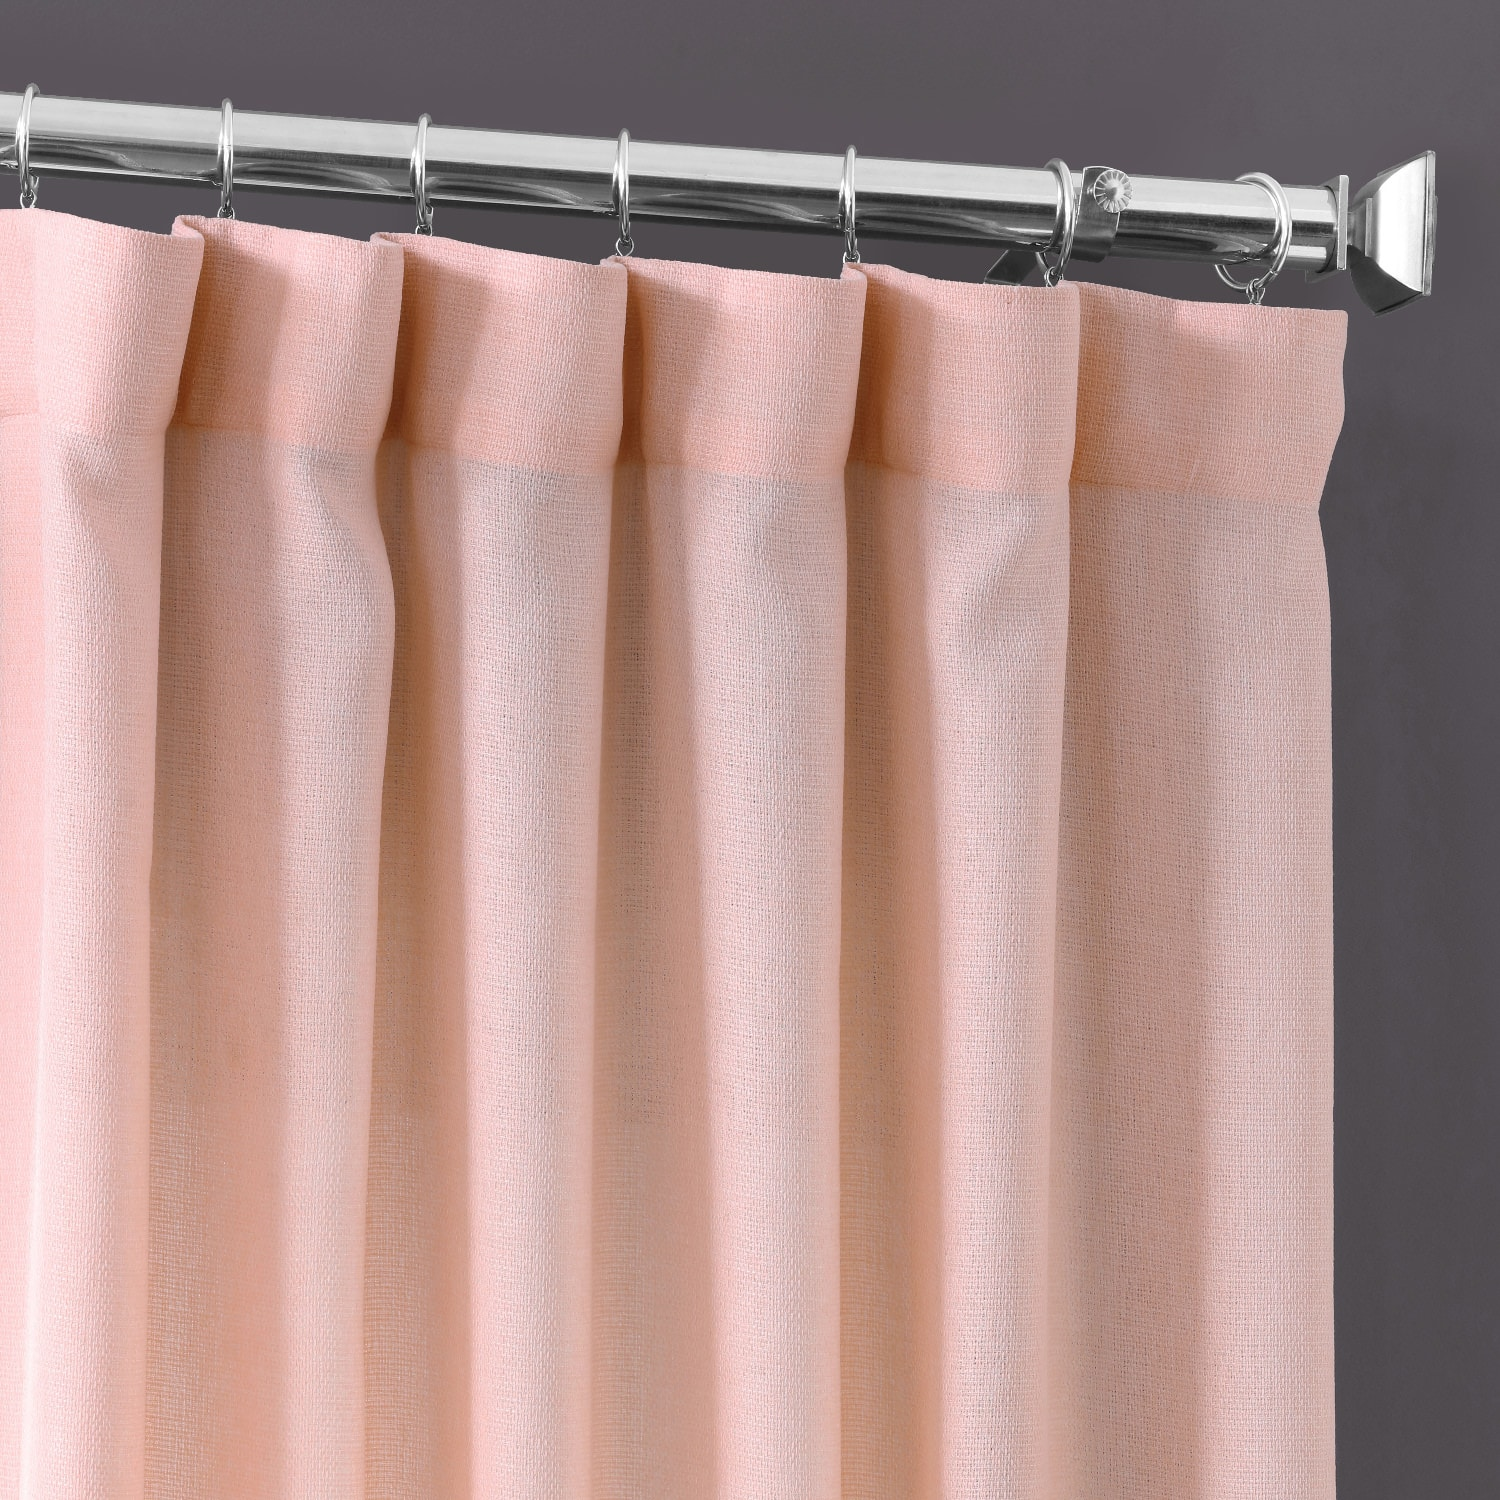 Primrose Pink Faux Linen Sheer Curtain